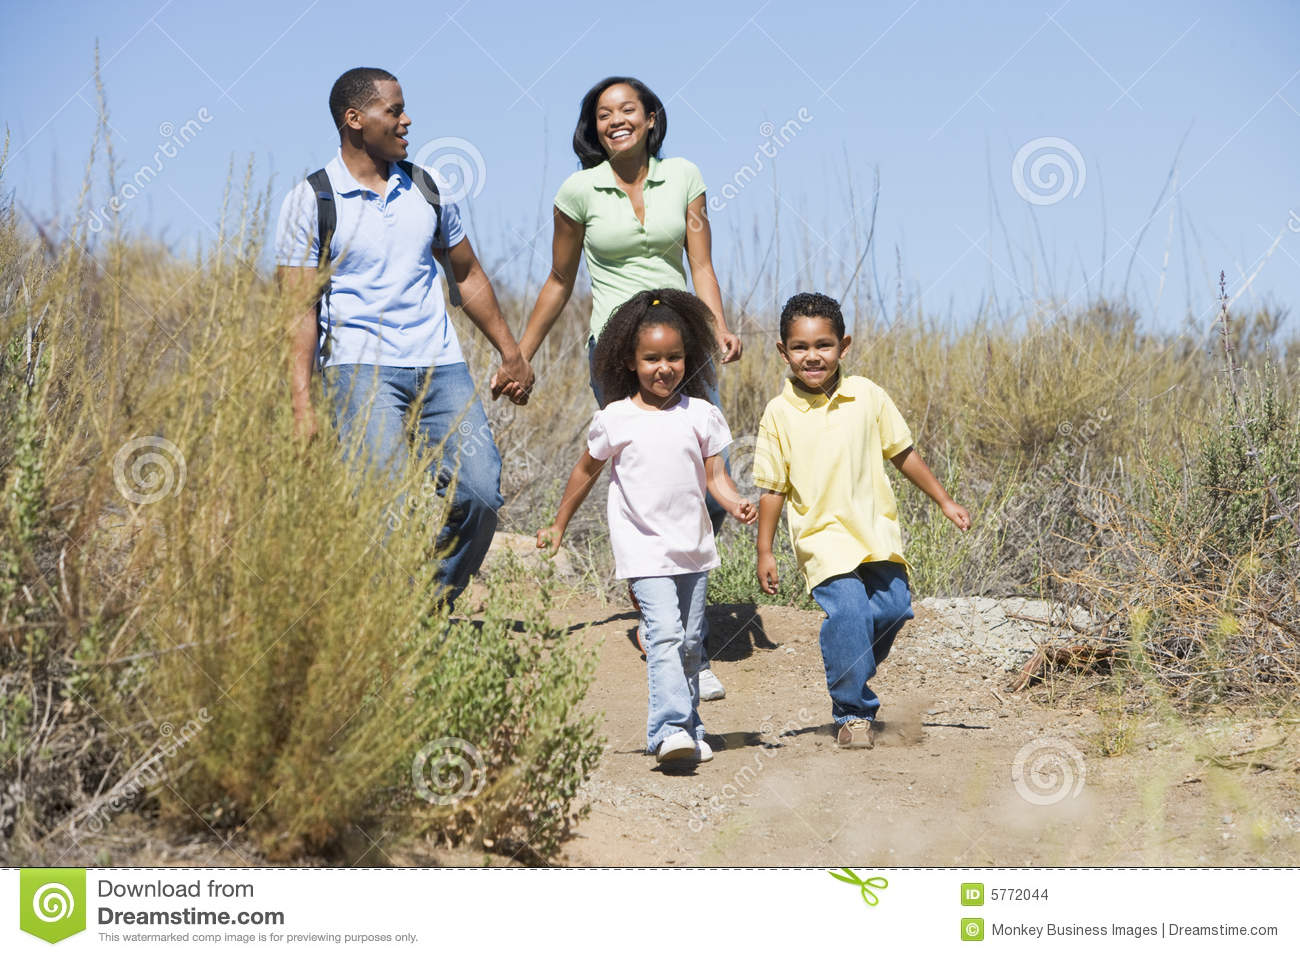 Family hands holding path smiling walking